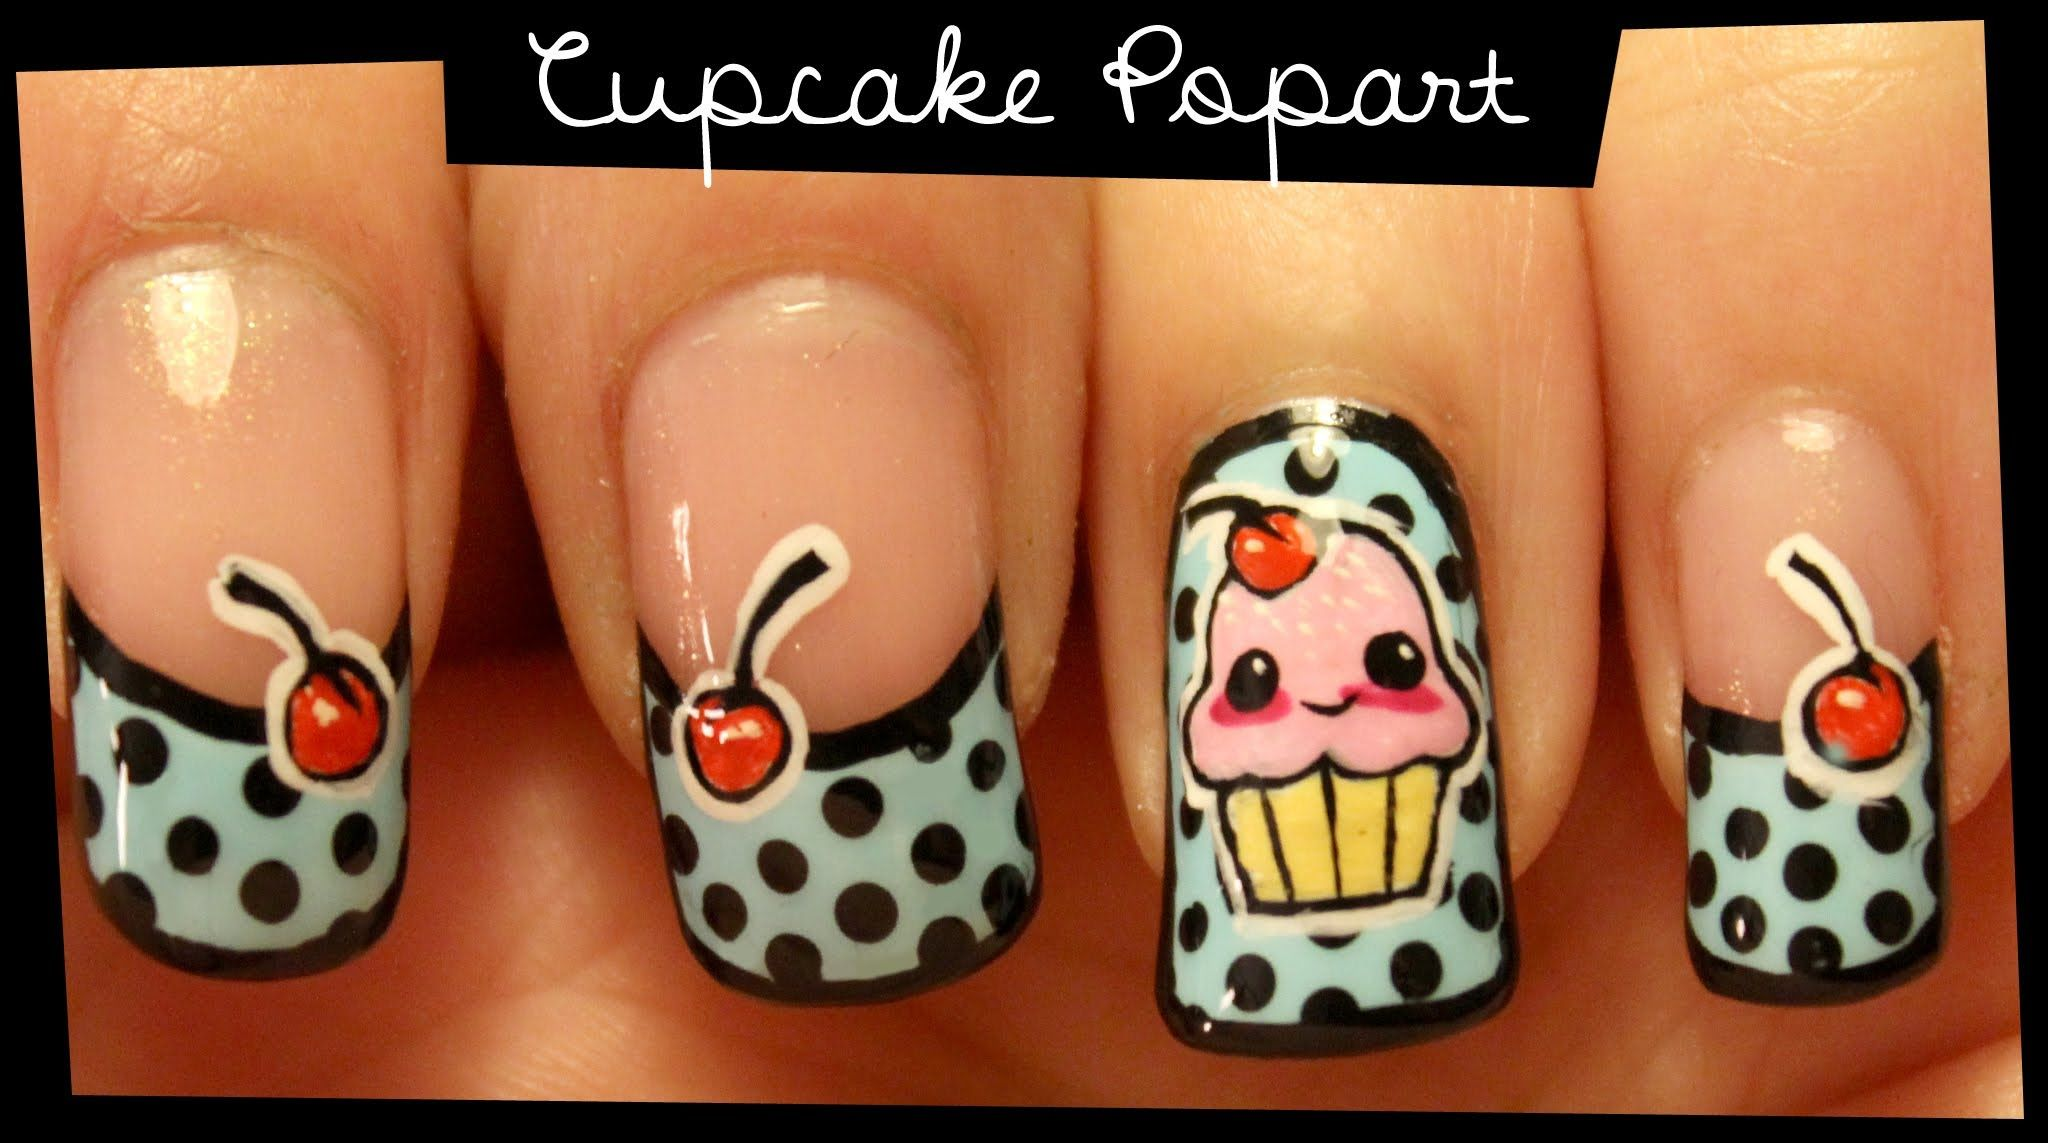 How to paint cupcake popart nail art manicure at home step by step cupcake popart nail art no stickers solutioingenieria Choice Image